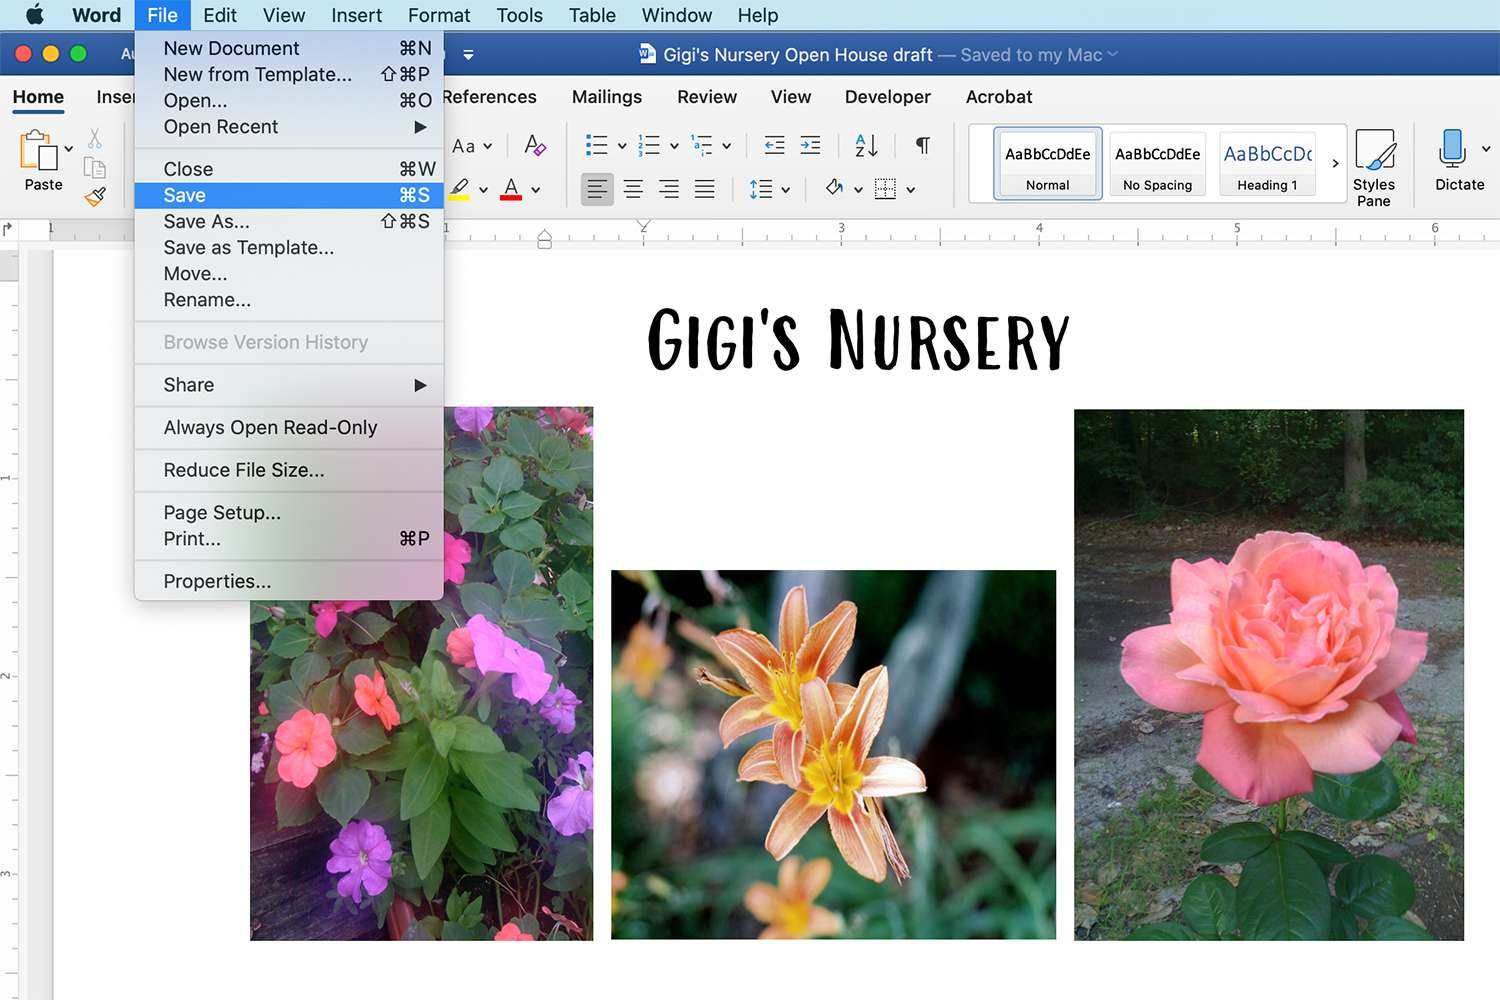 Microsoft Word showing a document with color images